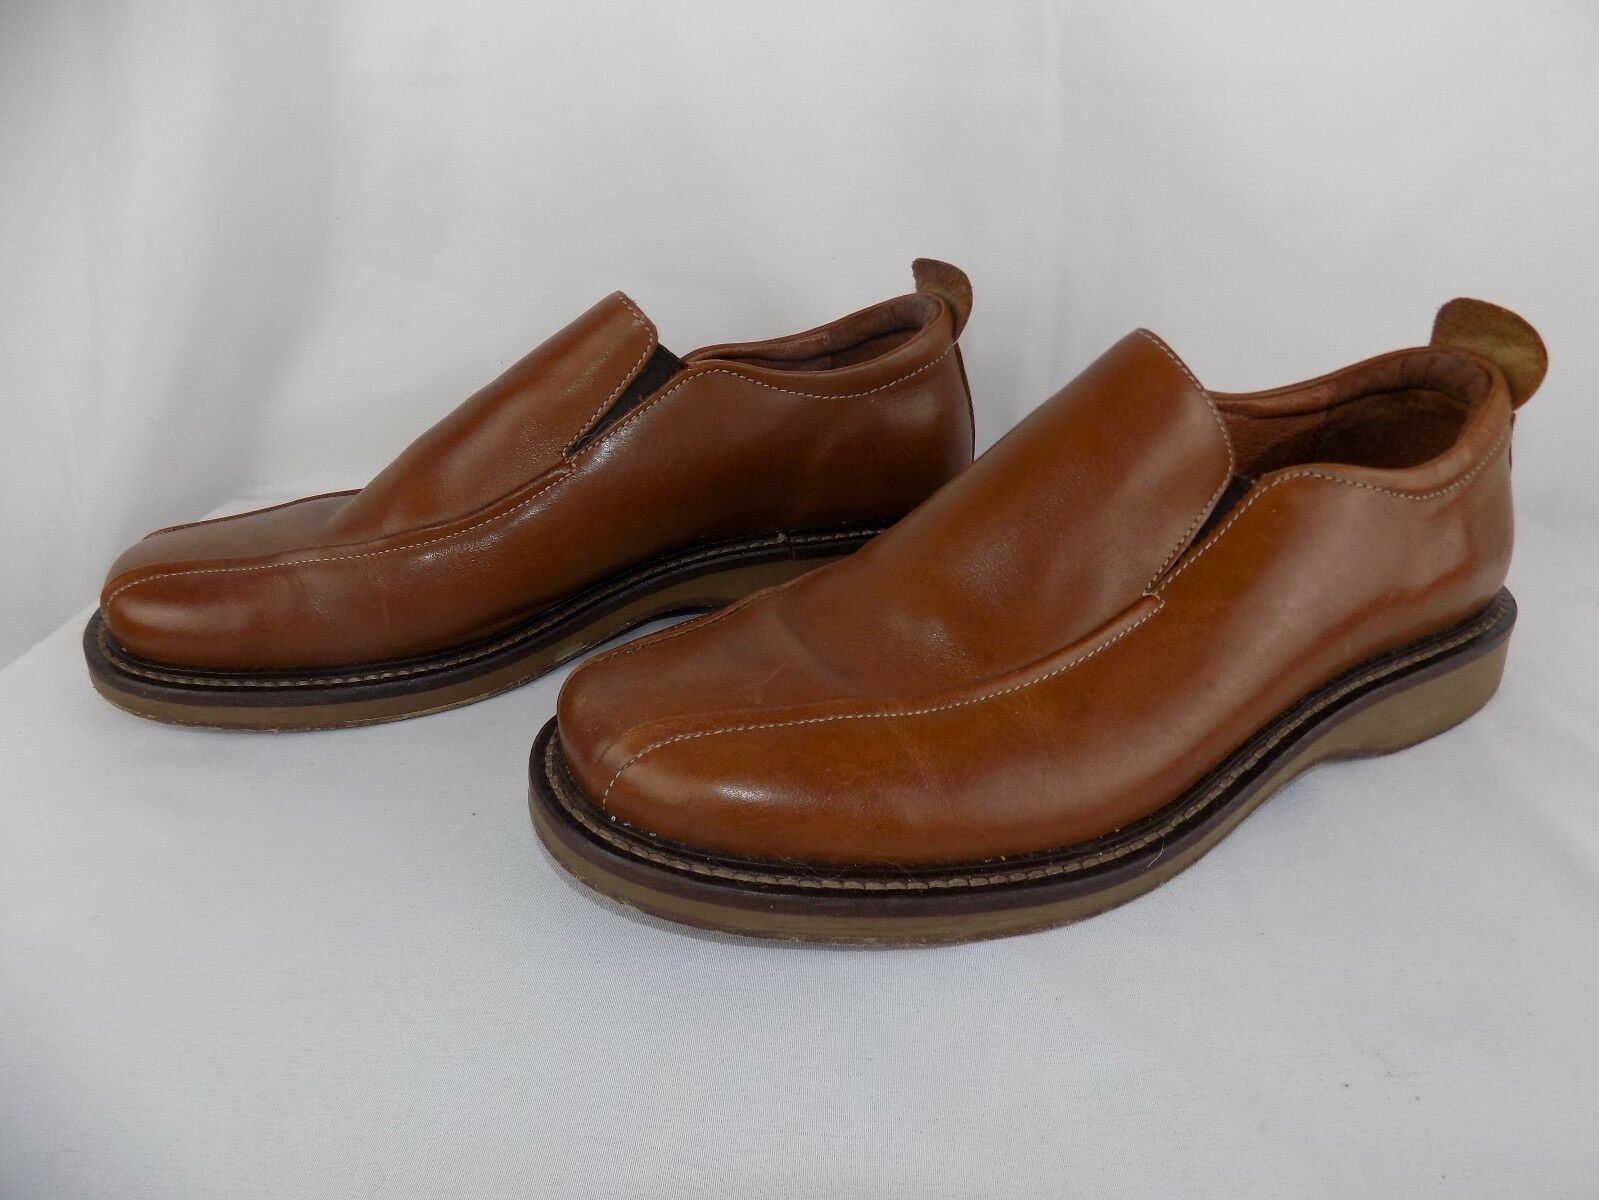 Skechers Collection Men's SZ 10.5 Brown Leather Shoes Loafers